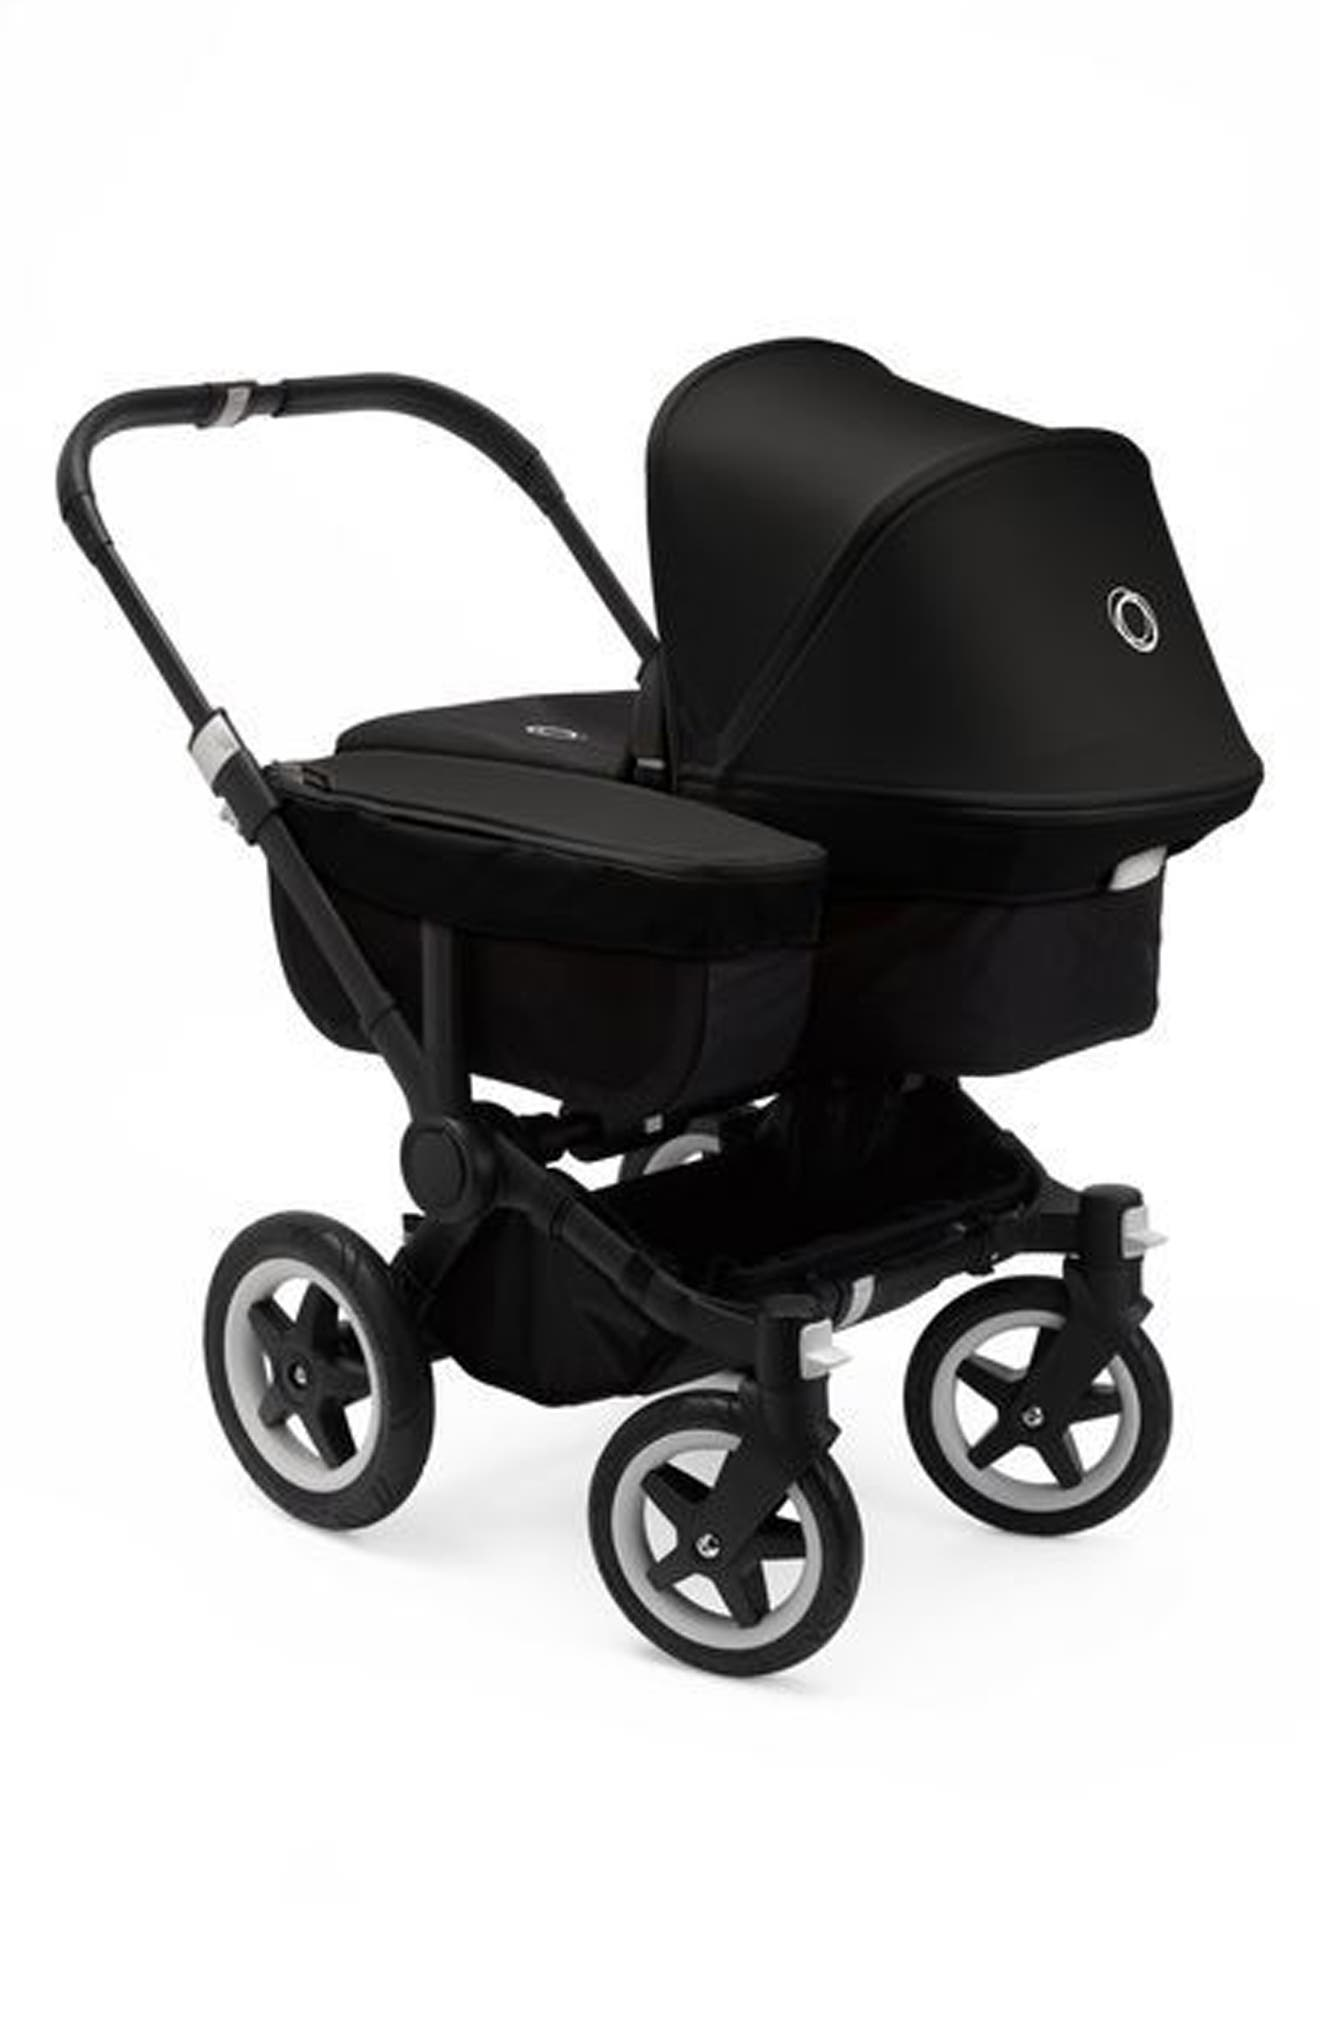 Bugaboo Side Luggage Basket Cover for Donkey2 Stroller